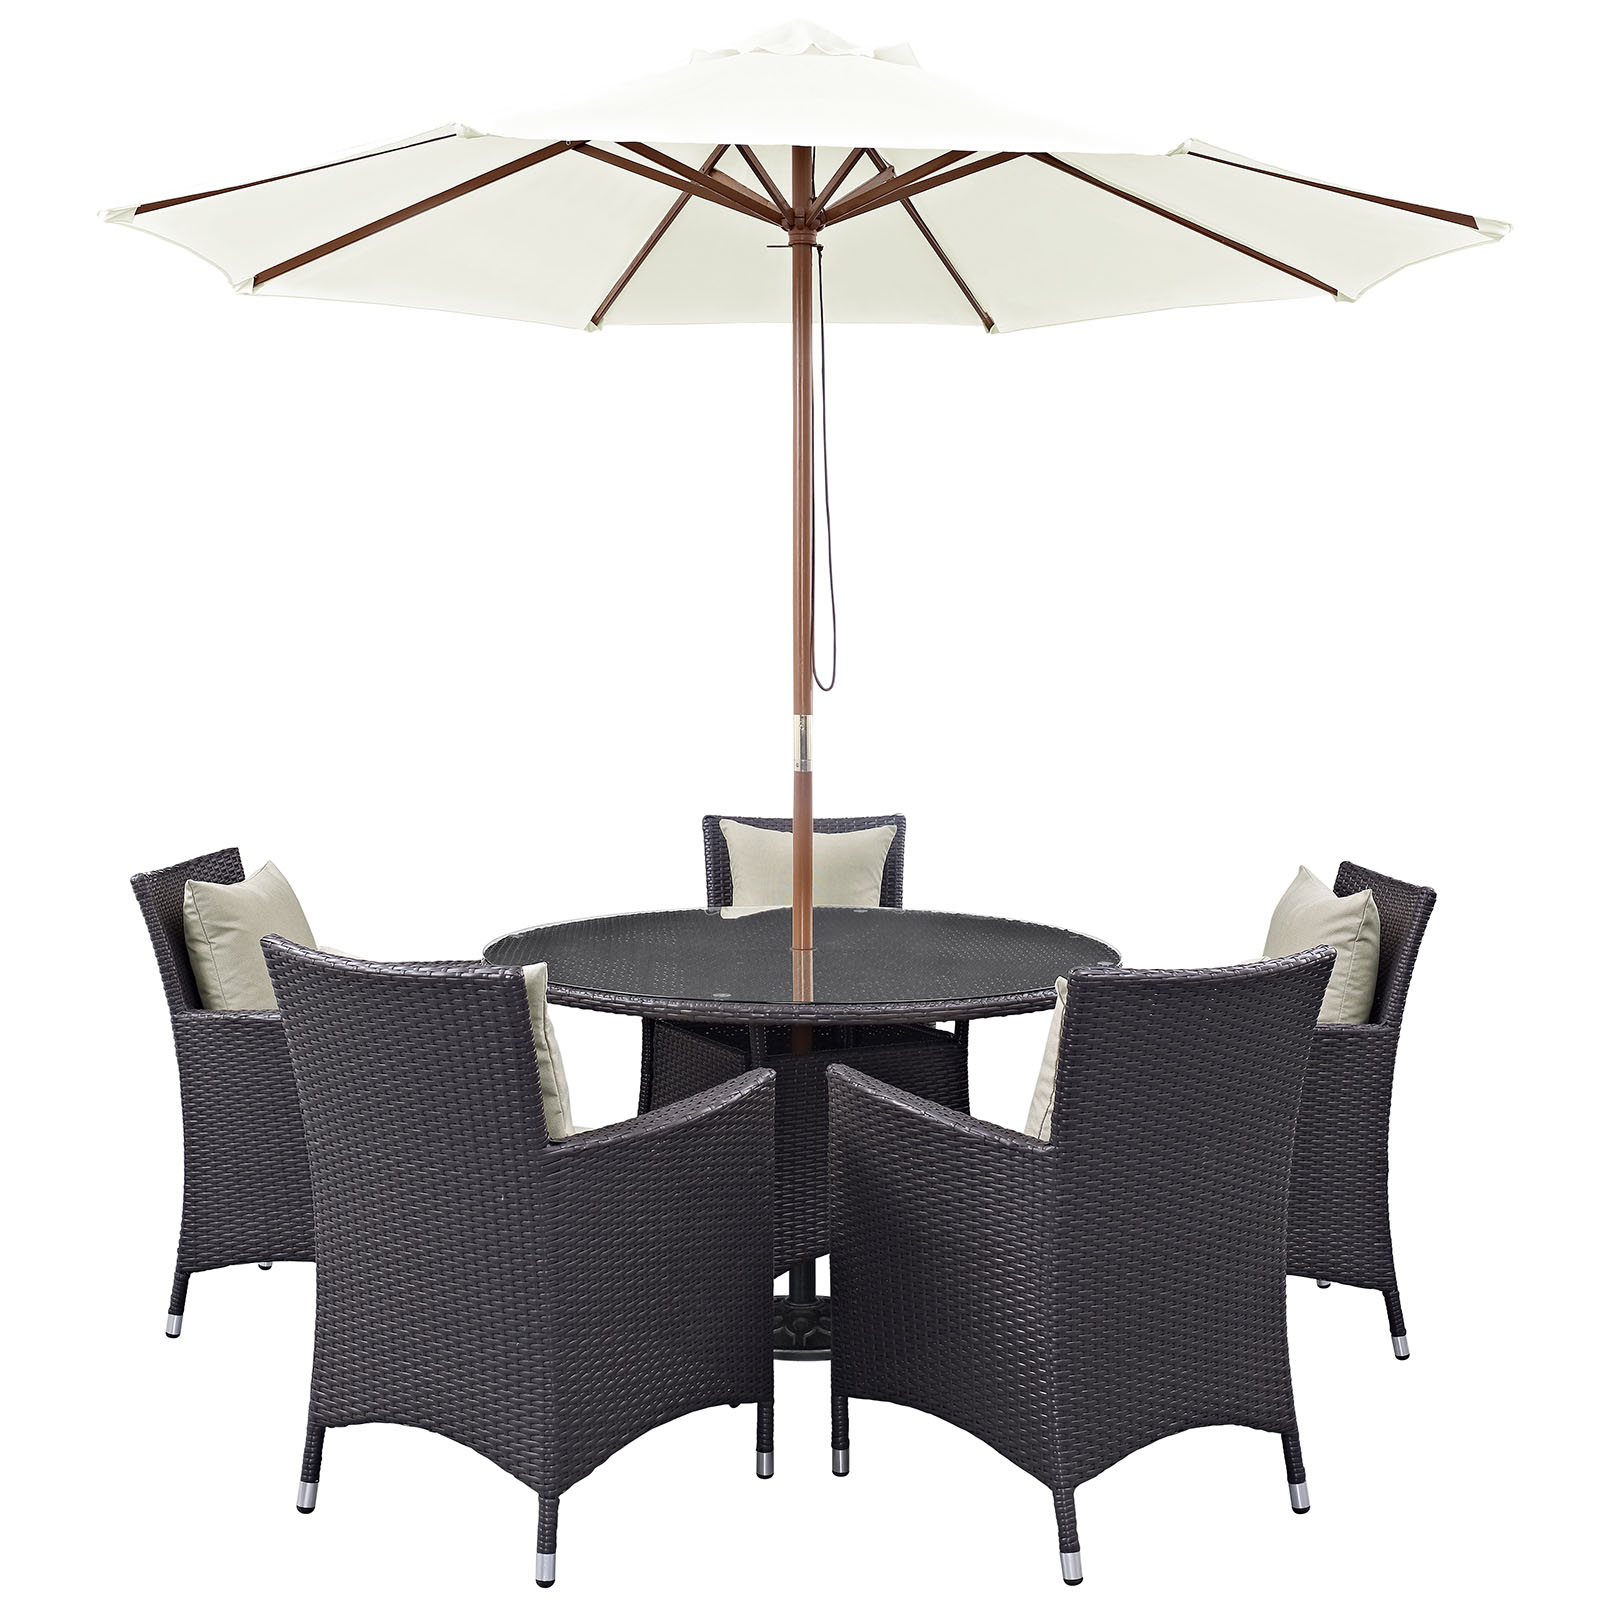 Modern Contemporary Urban Design Outdoor Patio Balcony Seven PCS Dining Chairs and Table Set, Beige, Rattan